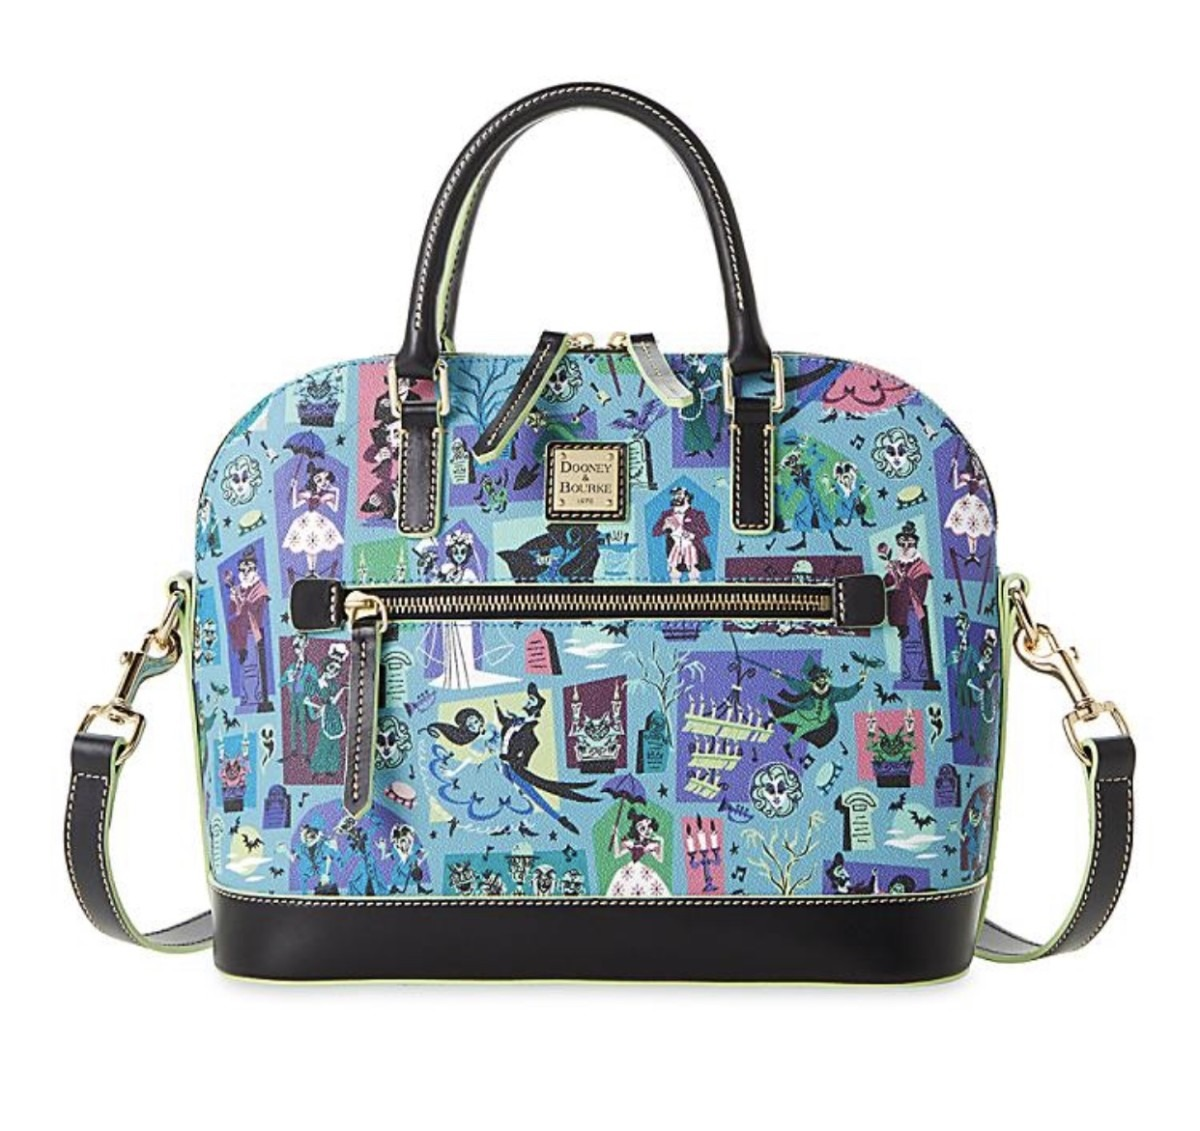 NEW! The Haunted Mansion by Dooney & Bourke 3